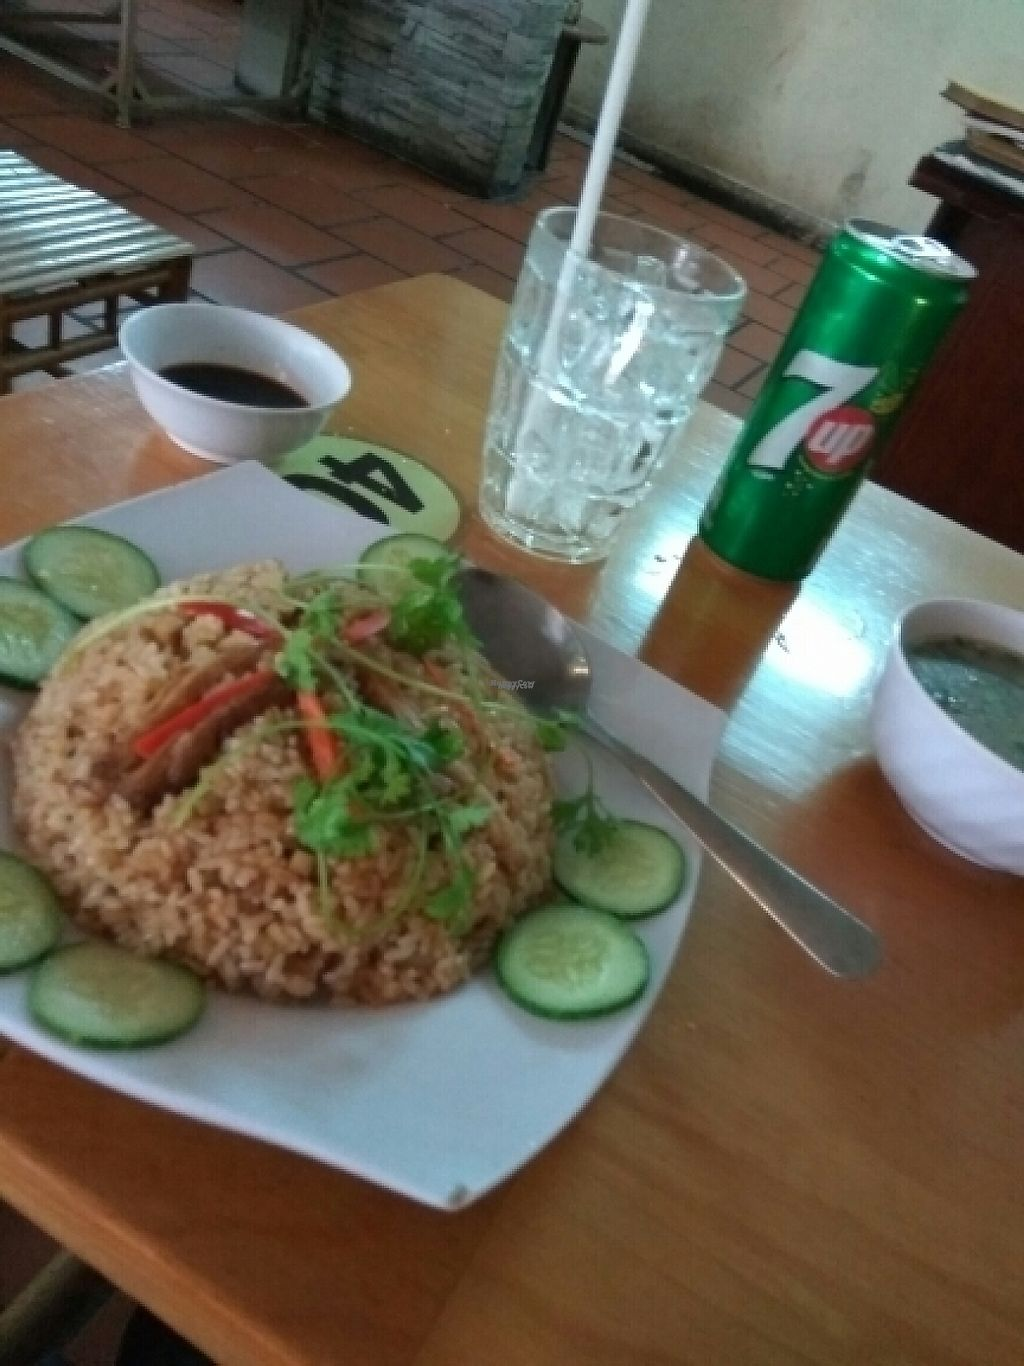 "Photo of Nha Hang Chay Thien y  by <a href=""/members/profile/MrGee"">MrGee</a> <br/>mock chicken fried rice  <br/> November 17, 2016  - <a href='/contact/abuse/image/54284/191156'>Report</a>"